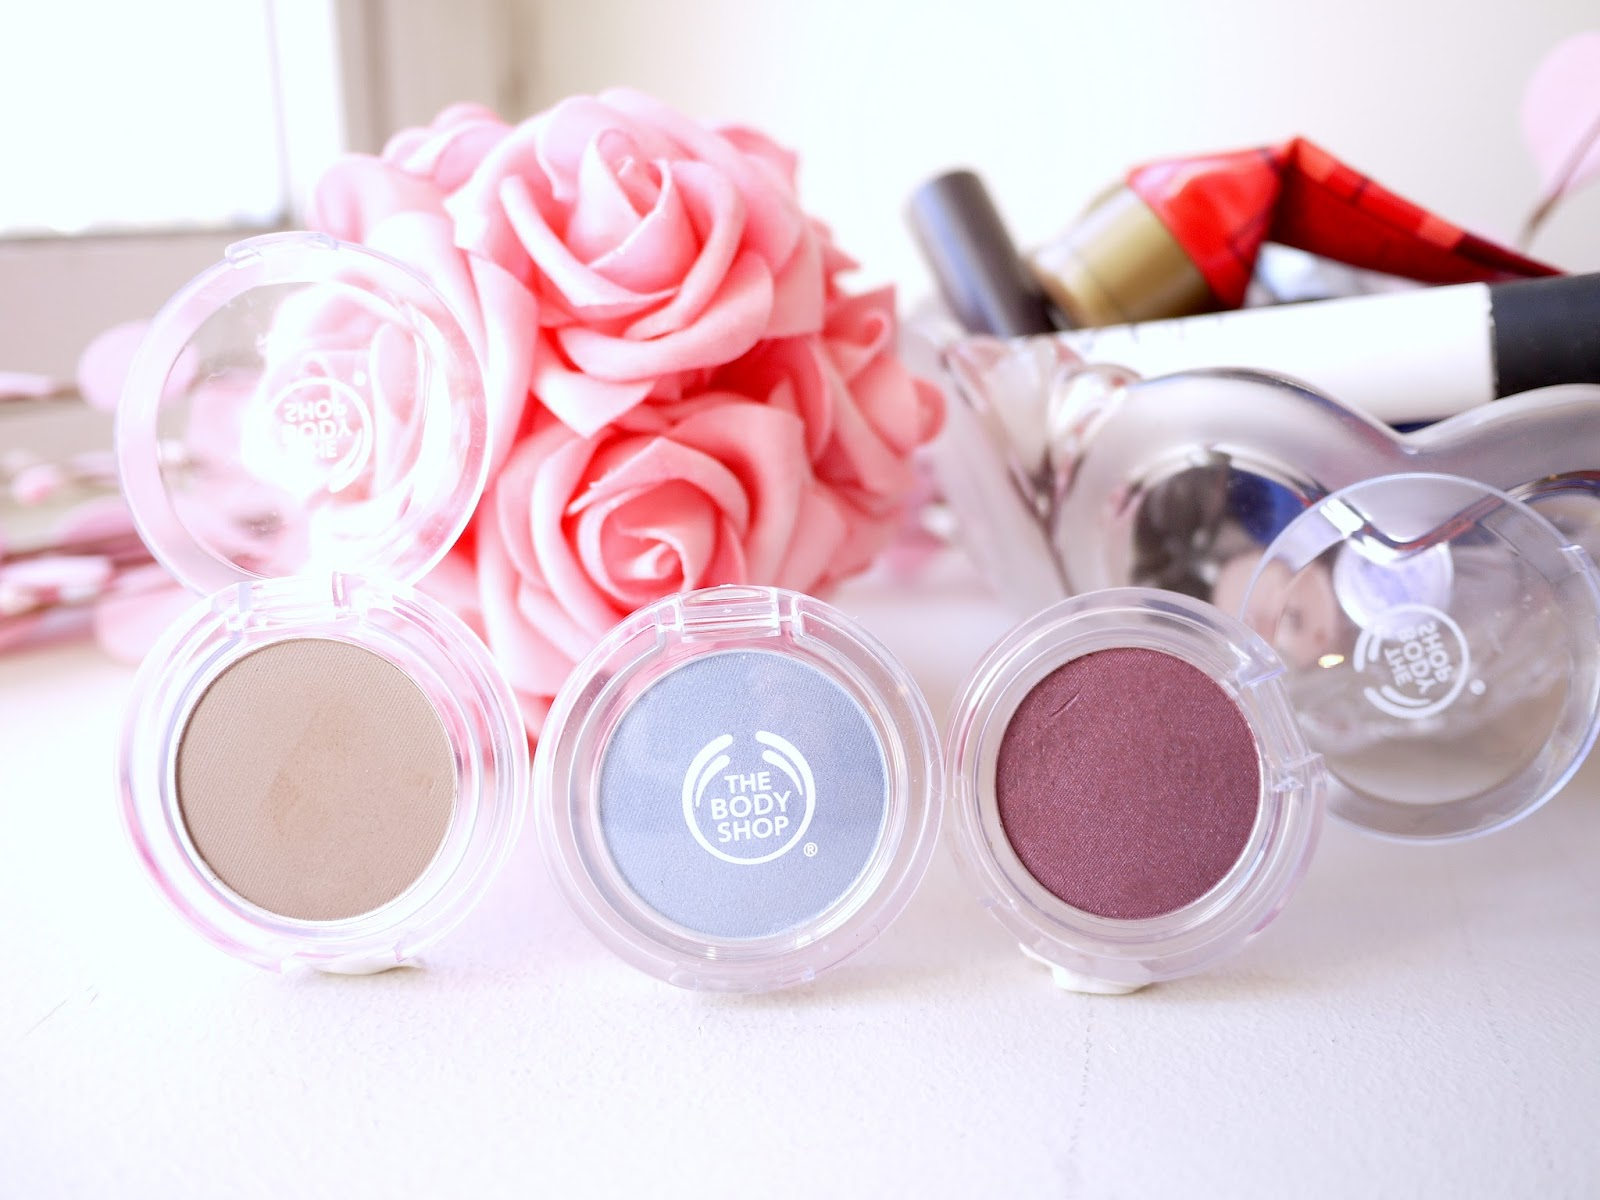 The Body Shop Color Crush Eyeshadows: Chocolate Liner, Boyfriend's Jeans, Grape Expectations swatch review